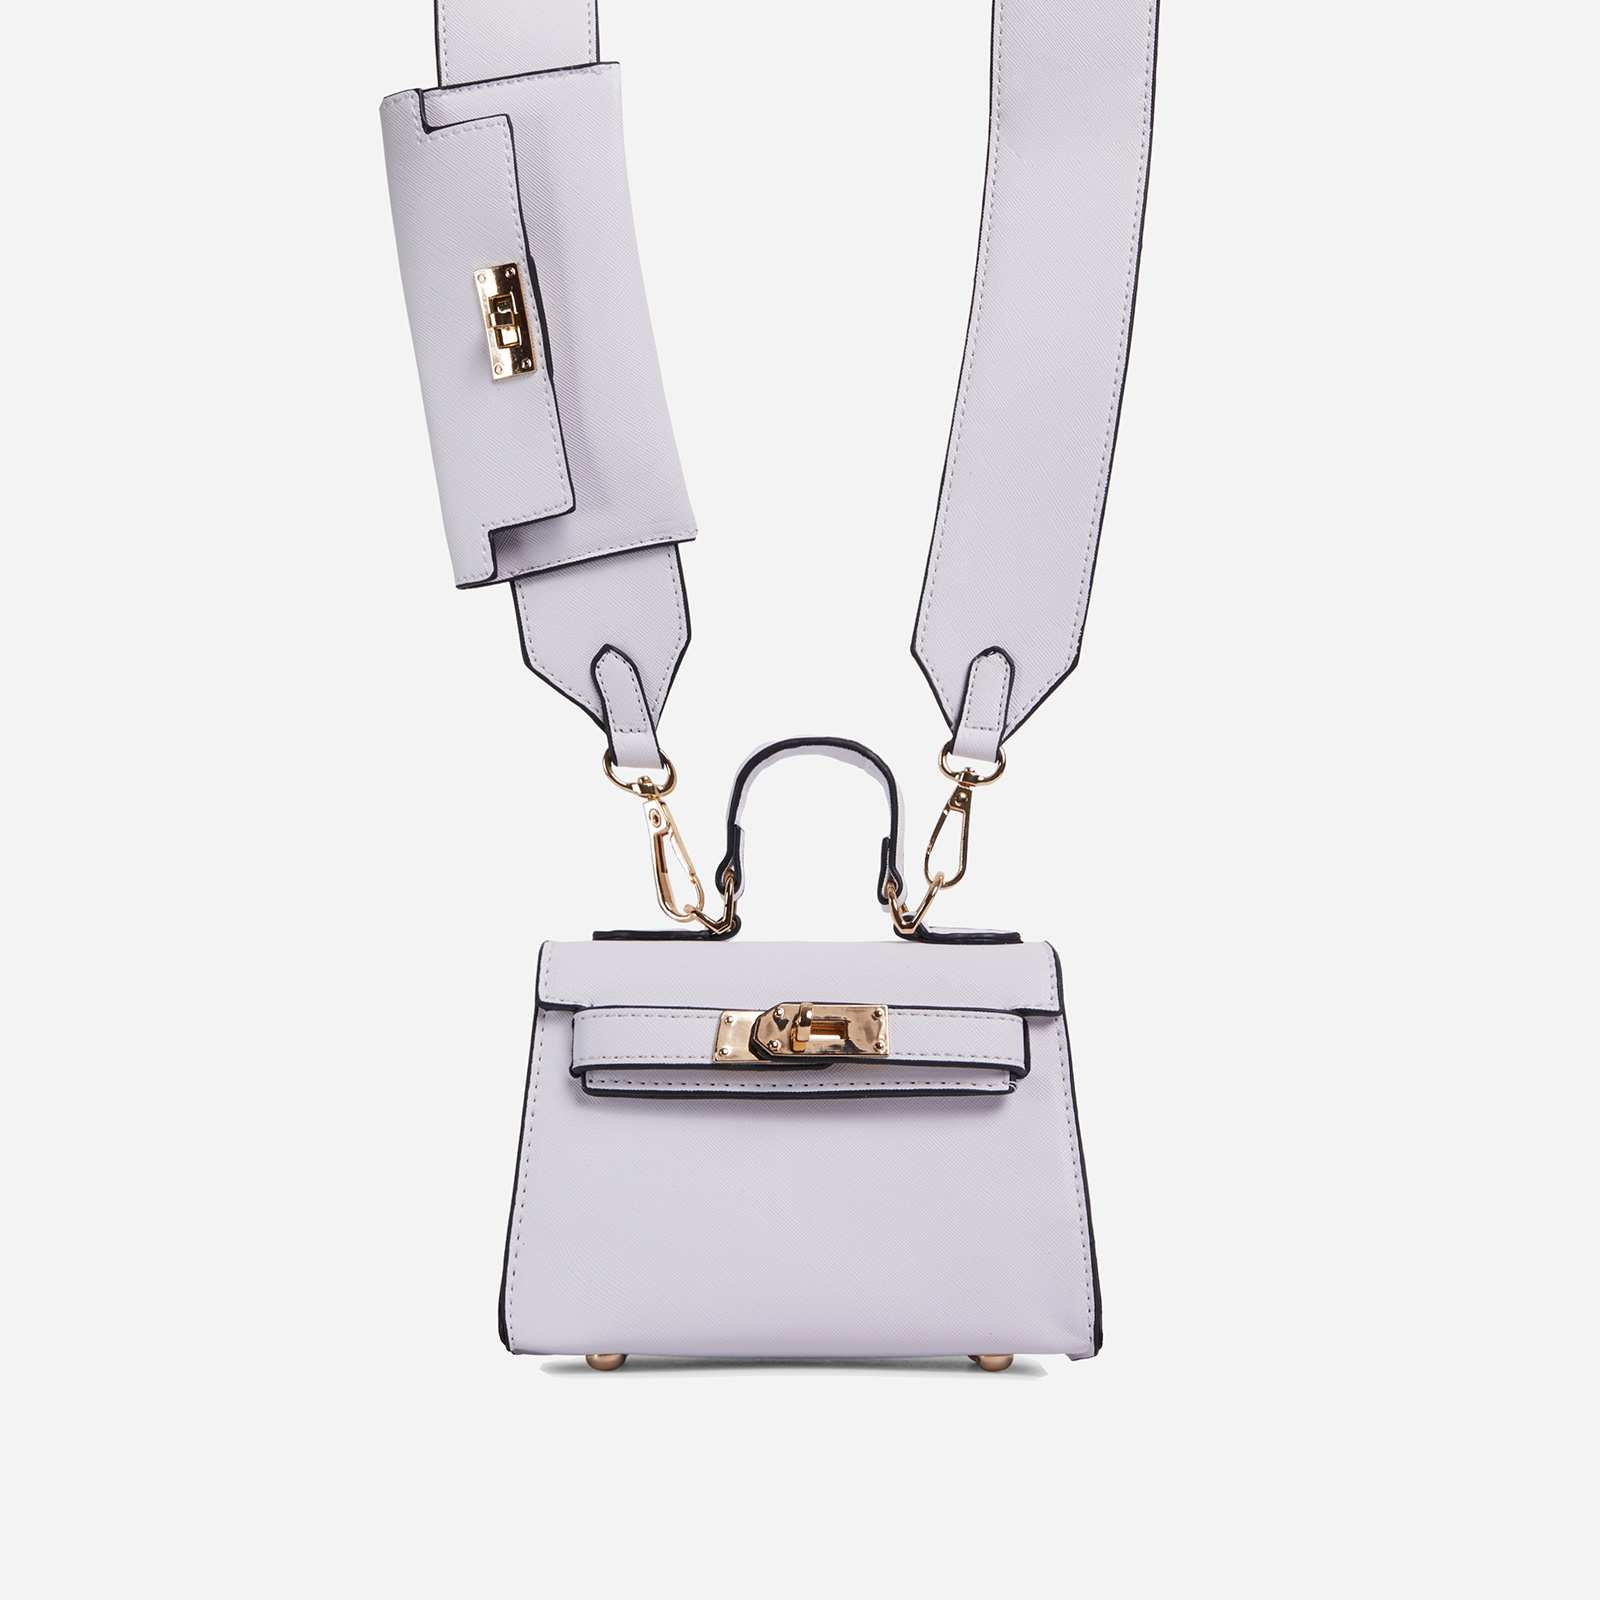 Kady Purse Detail Cross Body Tote Bag In White Faux Leather